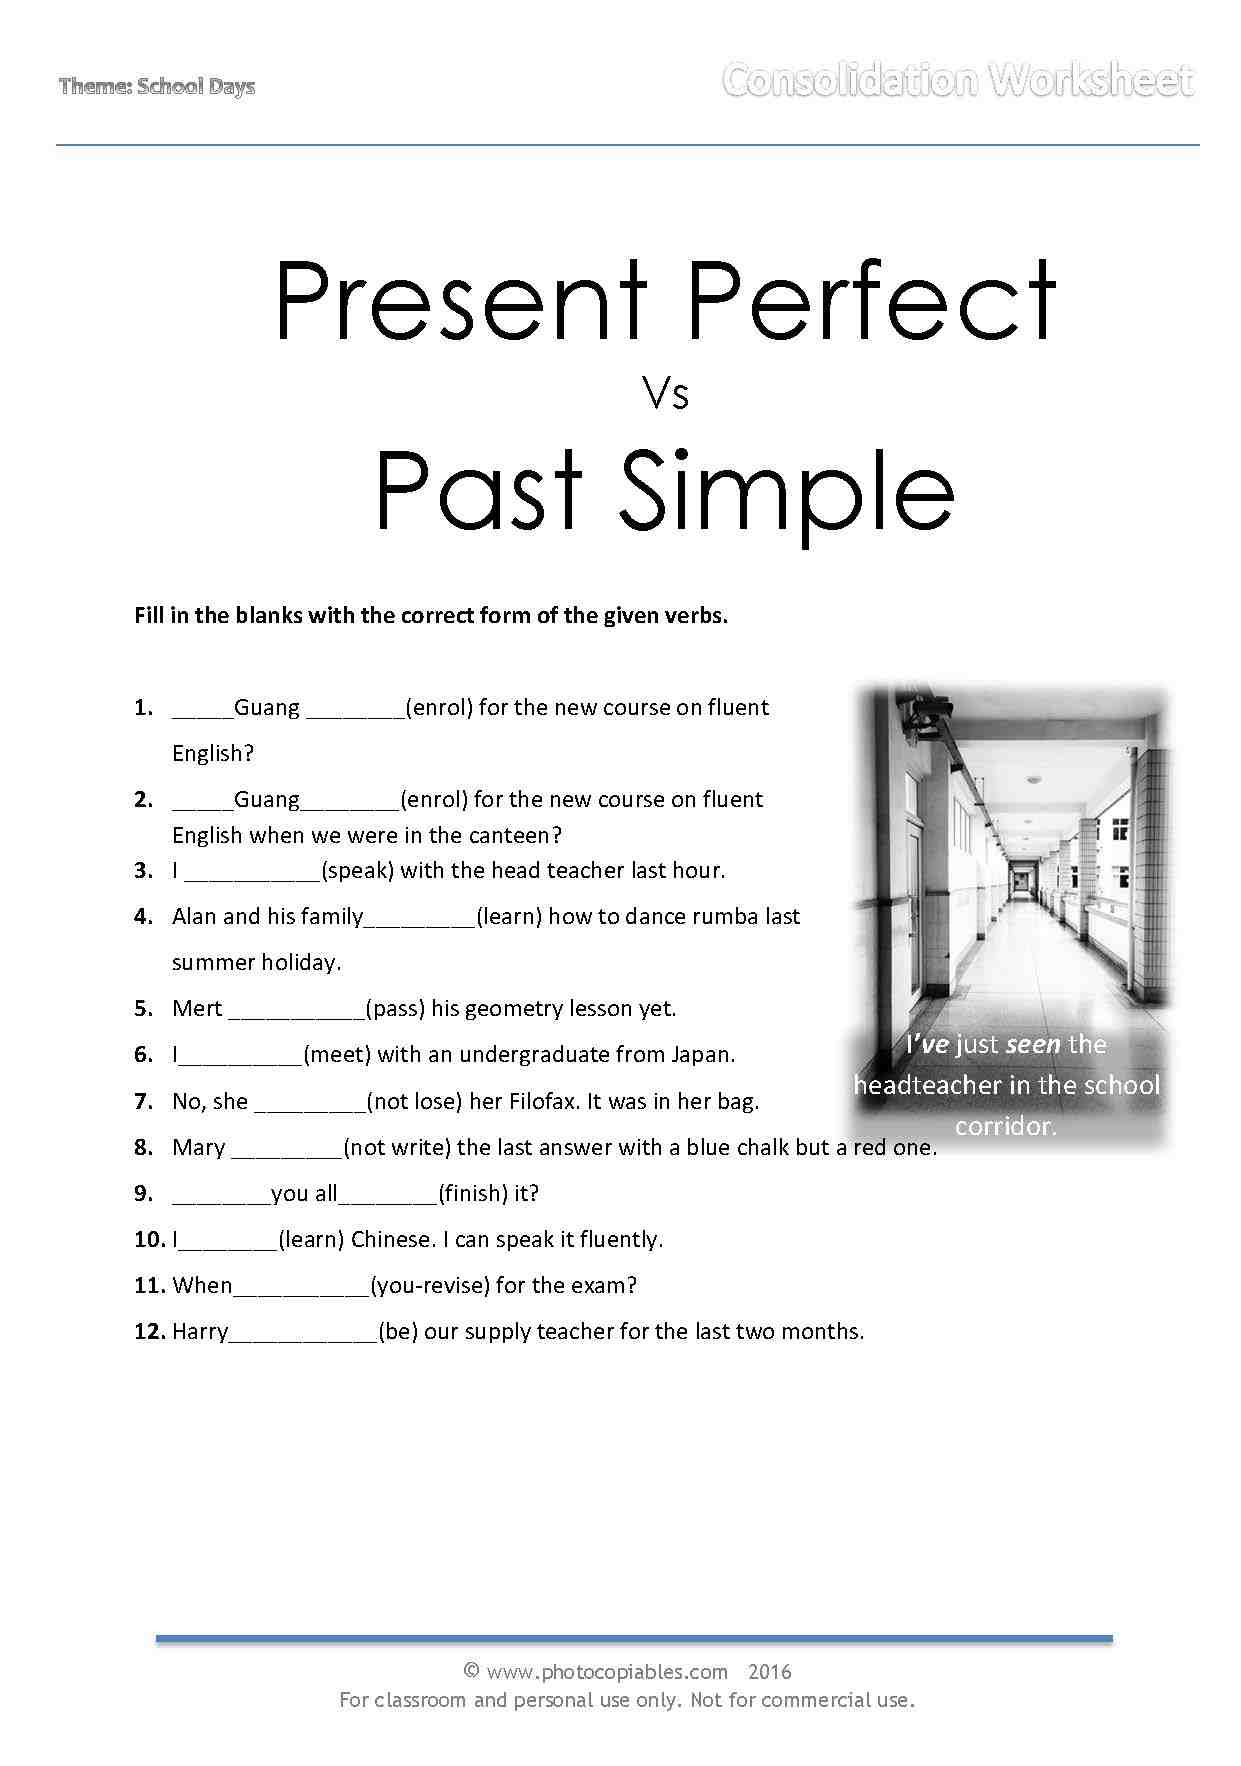 Worksheets Consolidation Worksheet present perfect vs past simple consolidation online exercise exercise